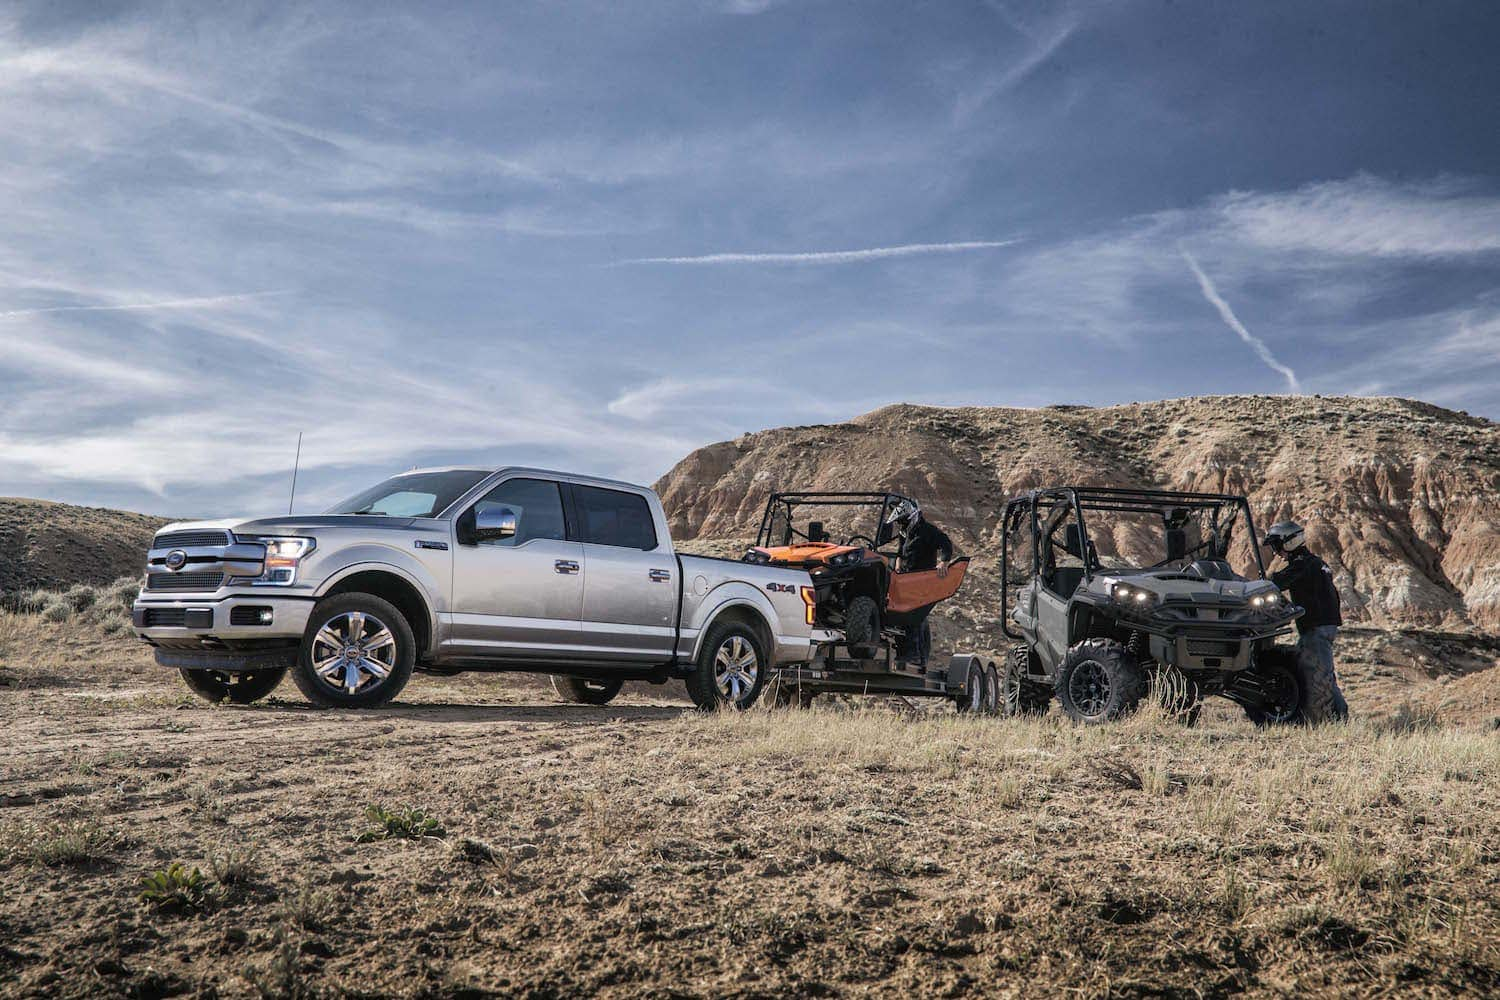 Ford F-150 Towing ATVs